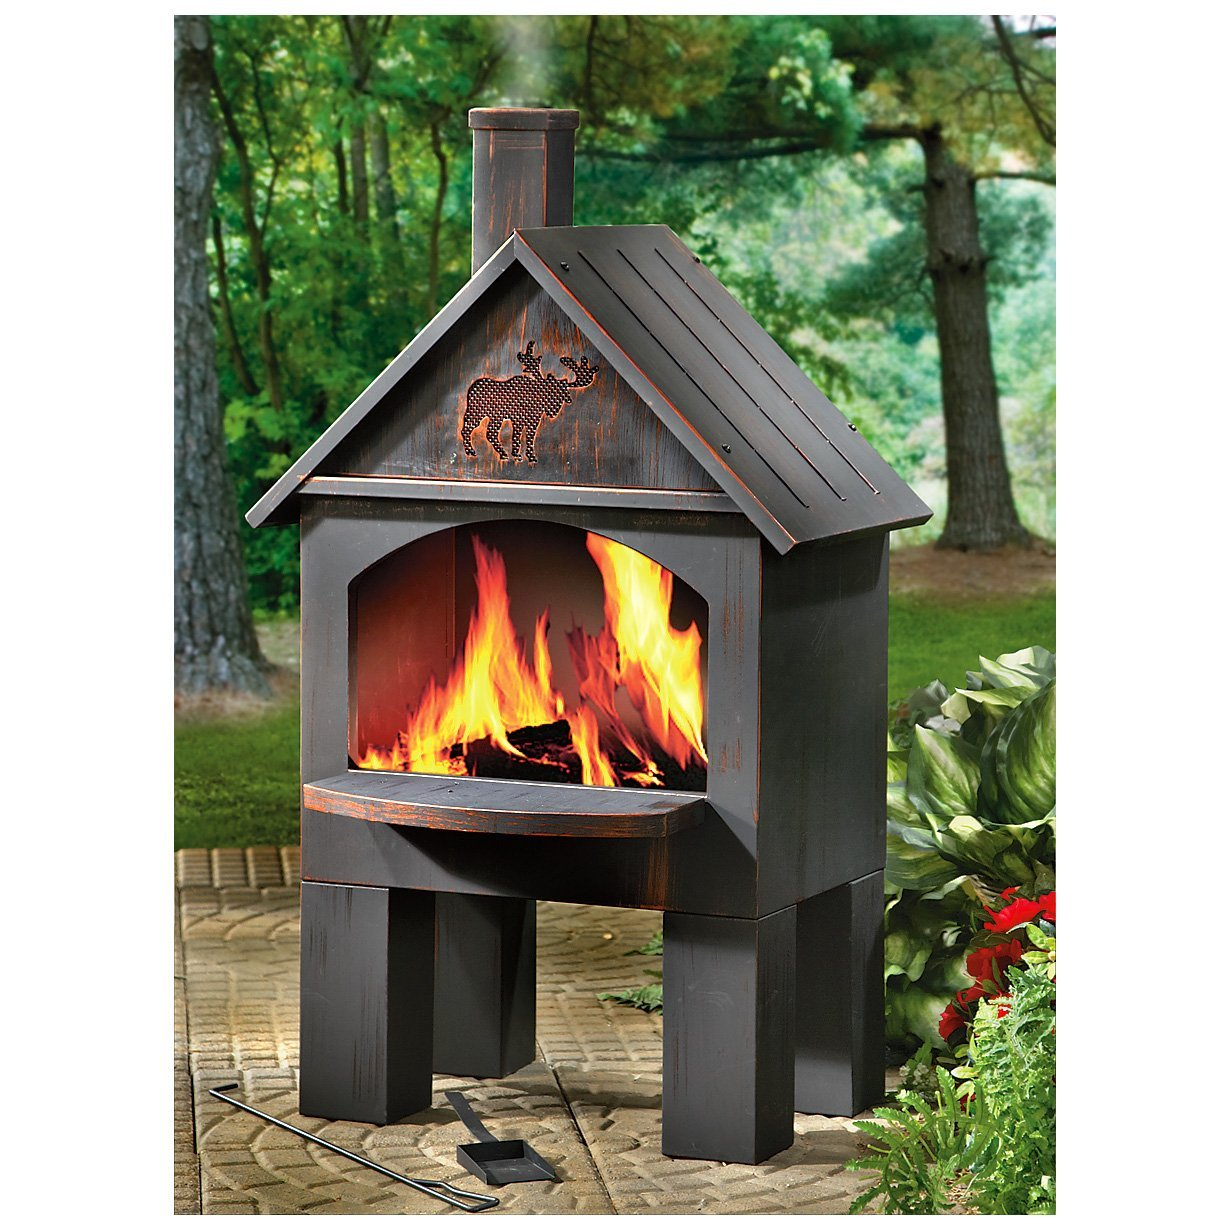 Home Shaped Chiminea Fire Pit Design In Black Color With Chimney And Four  Concrete Legs On